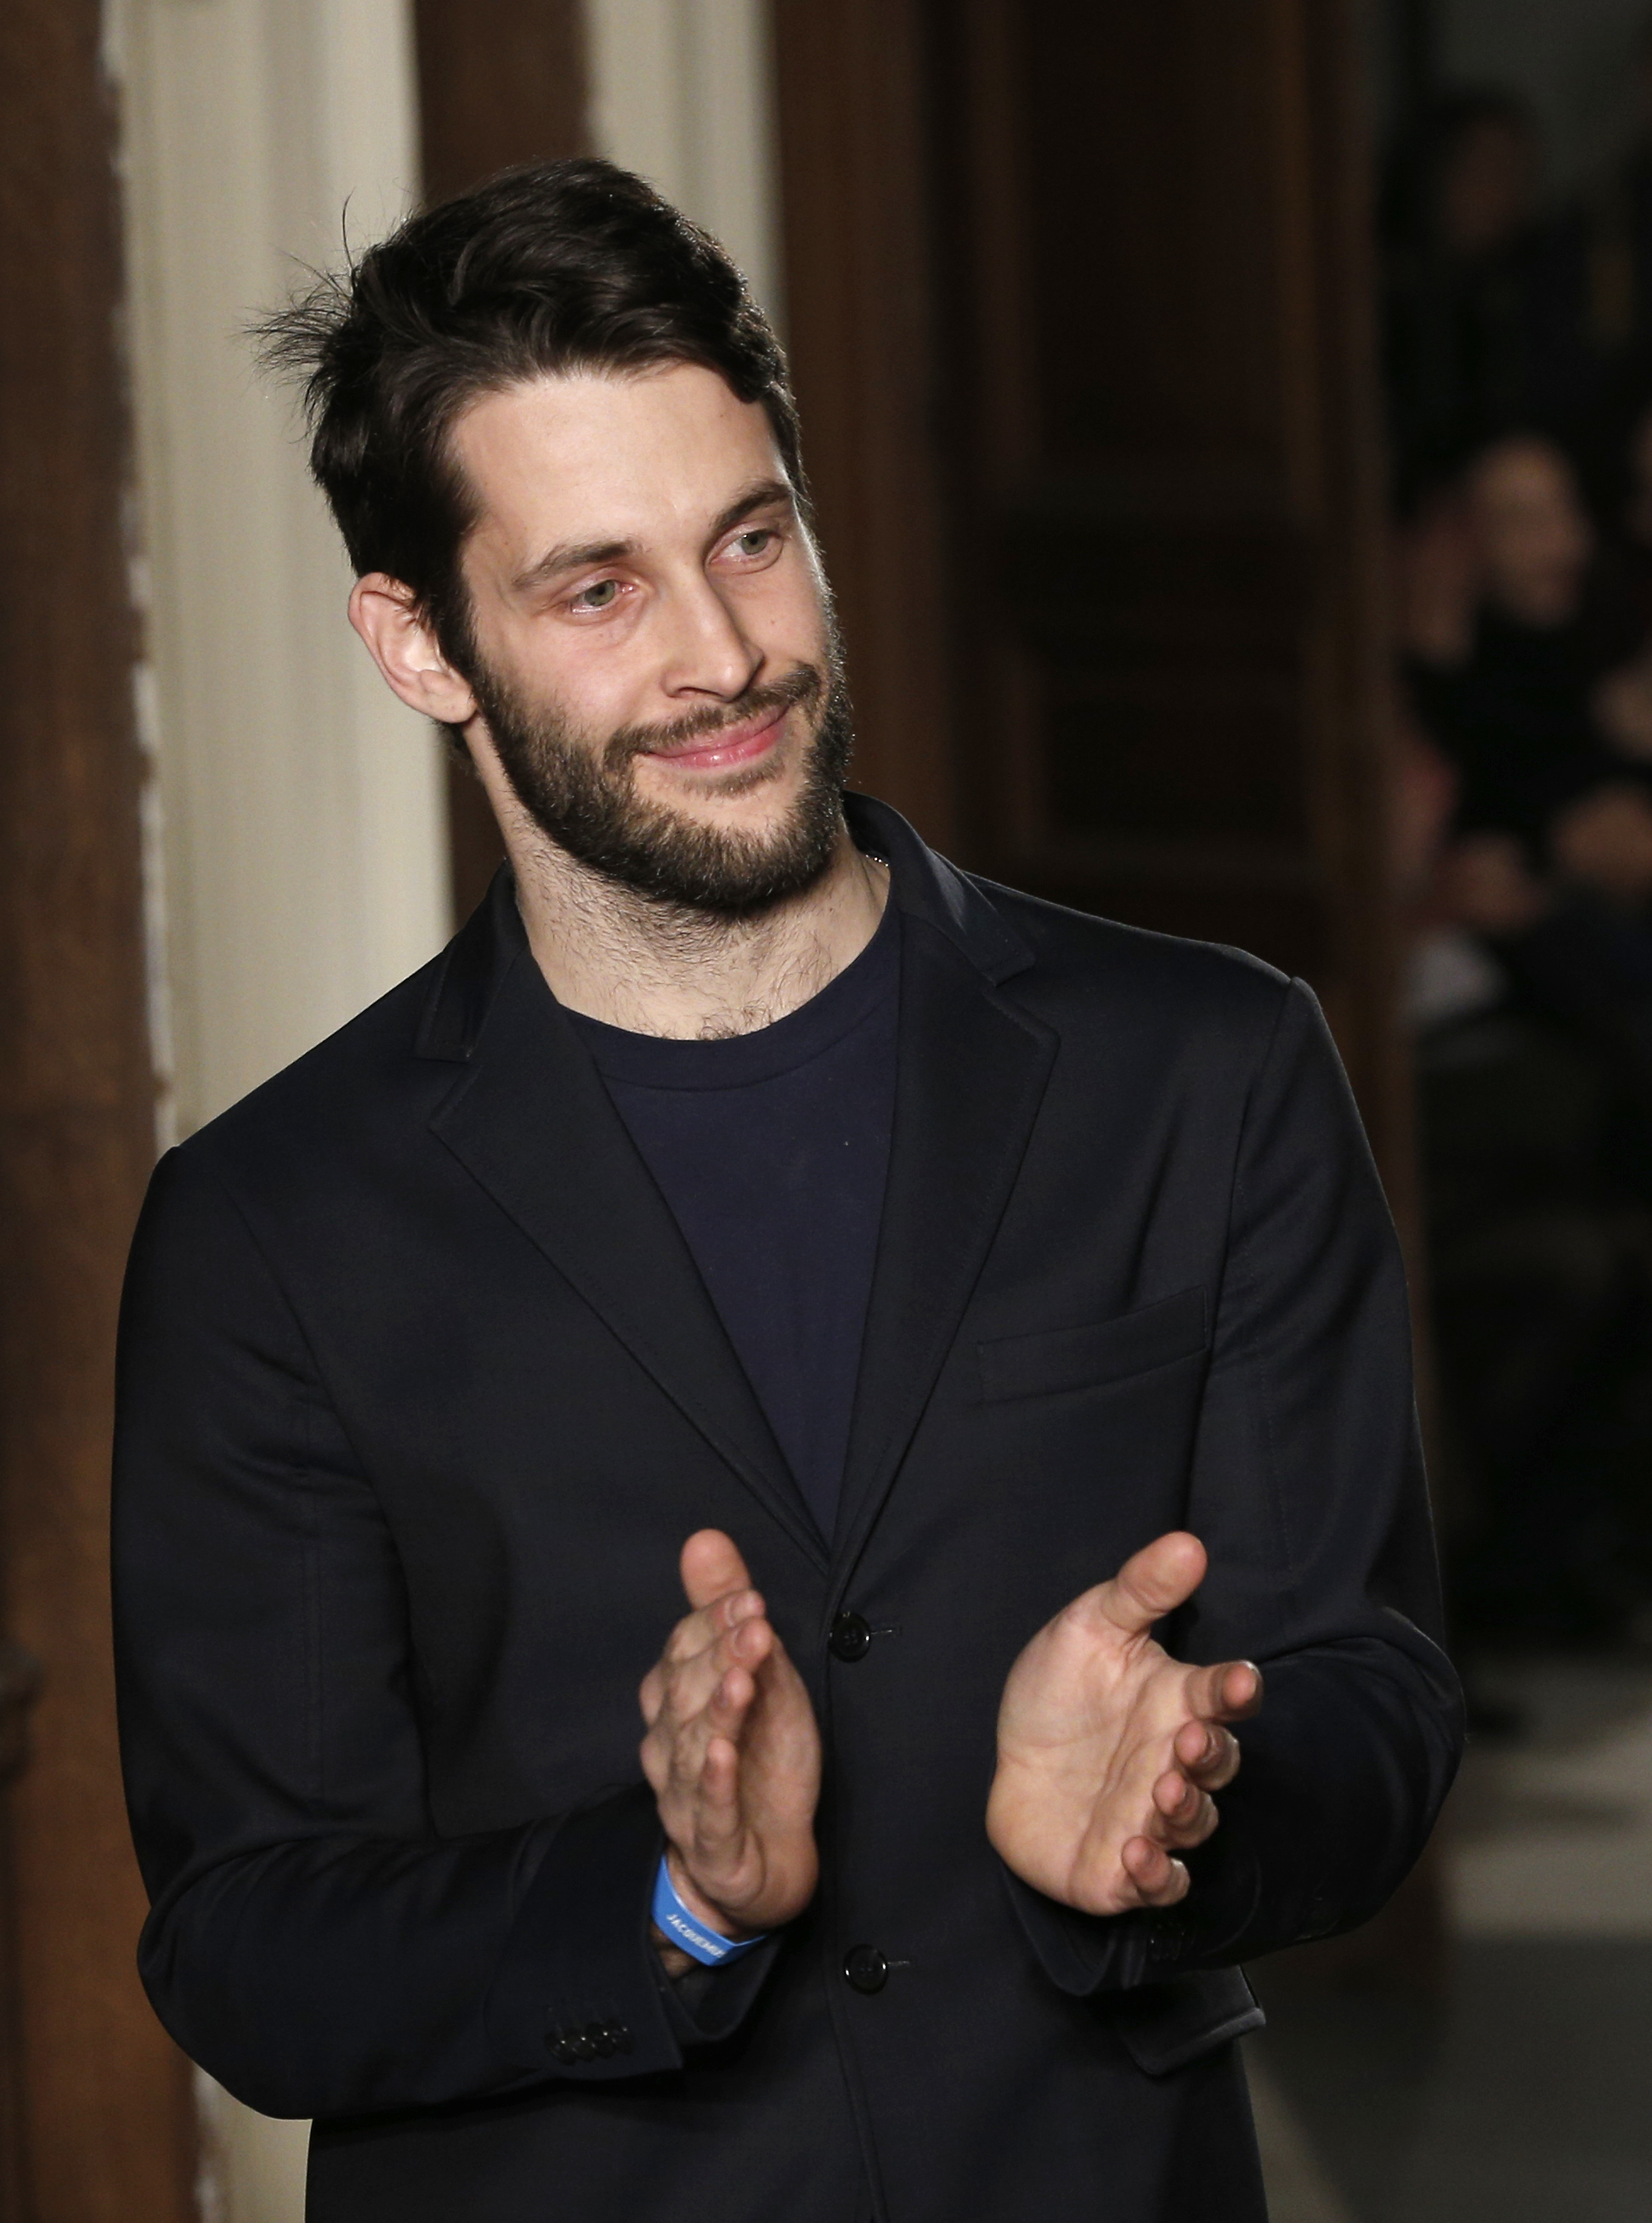 Jacquemus en París Fashion Week 2015